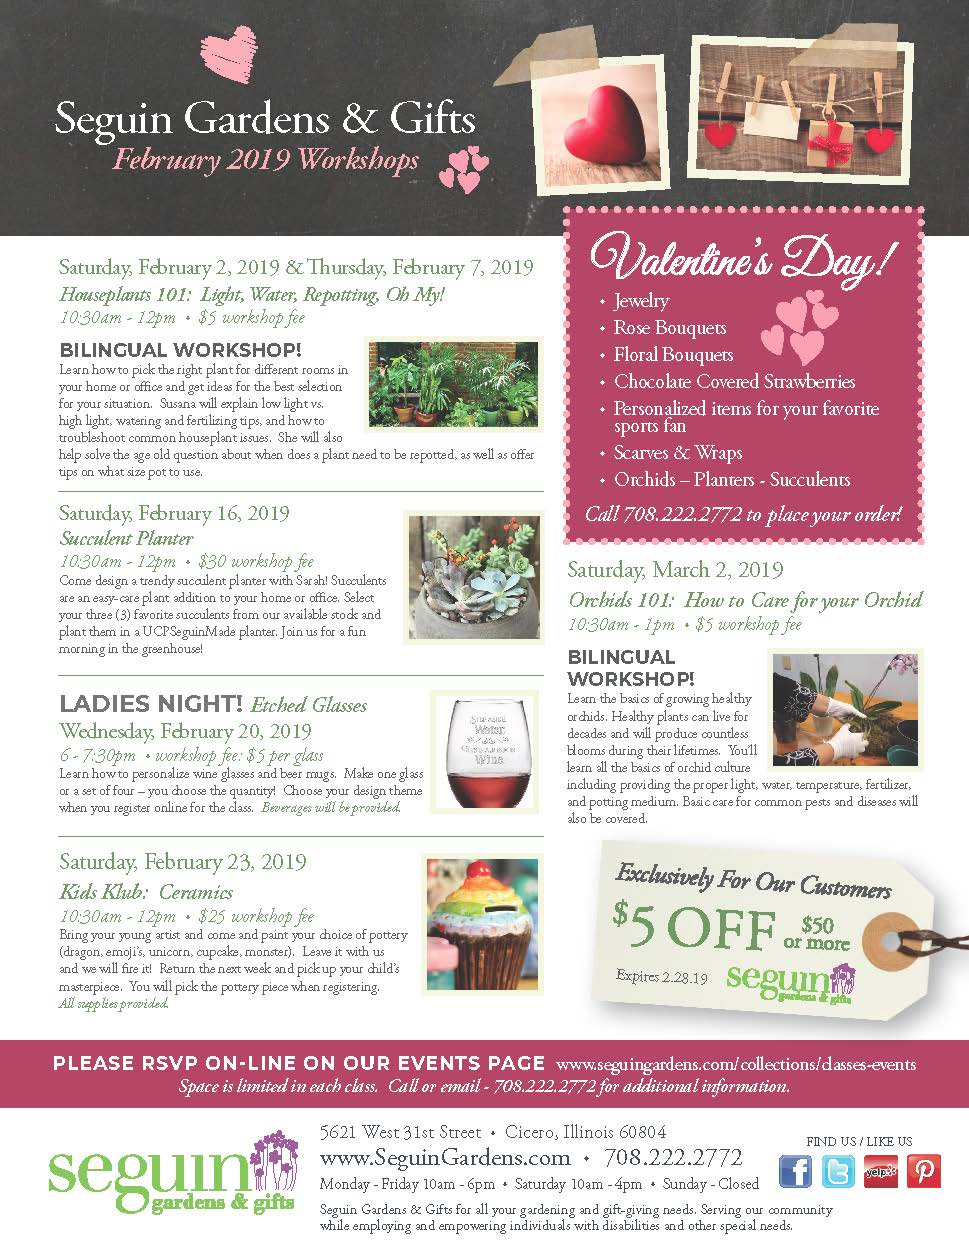 Seguin Gardens & Gifts February Events